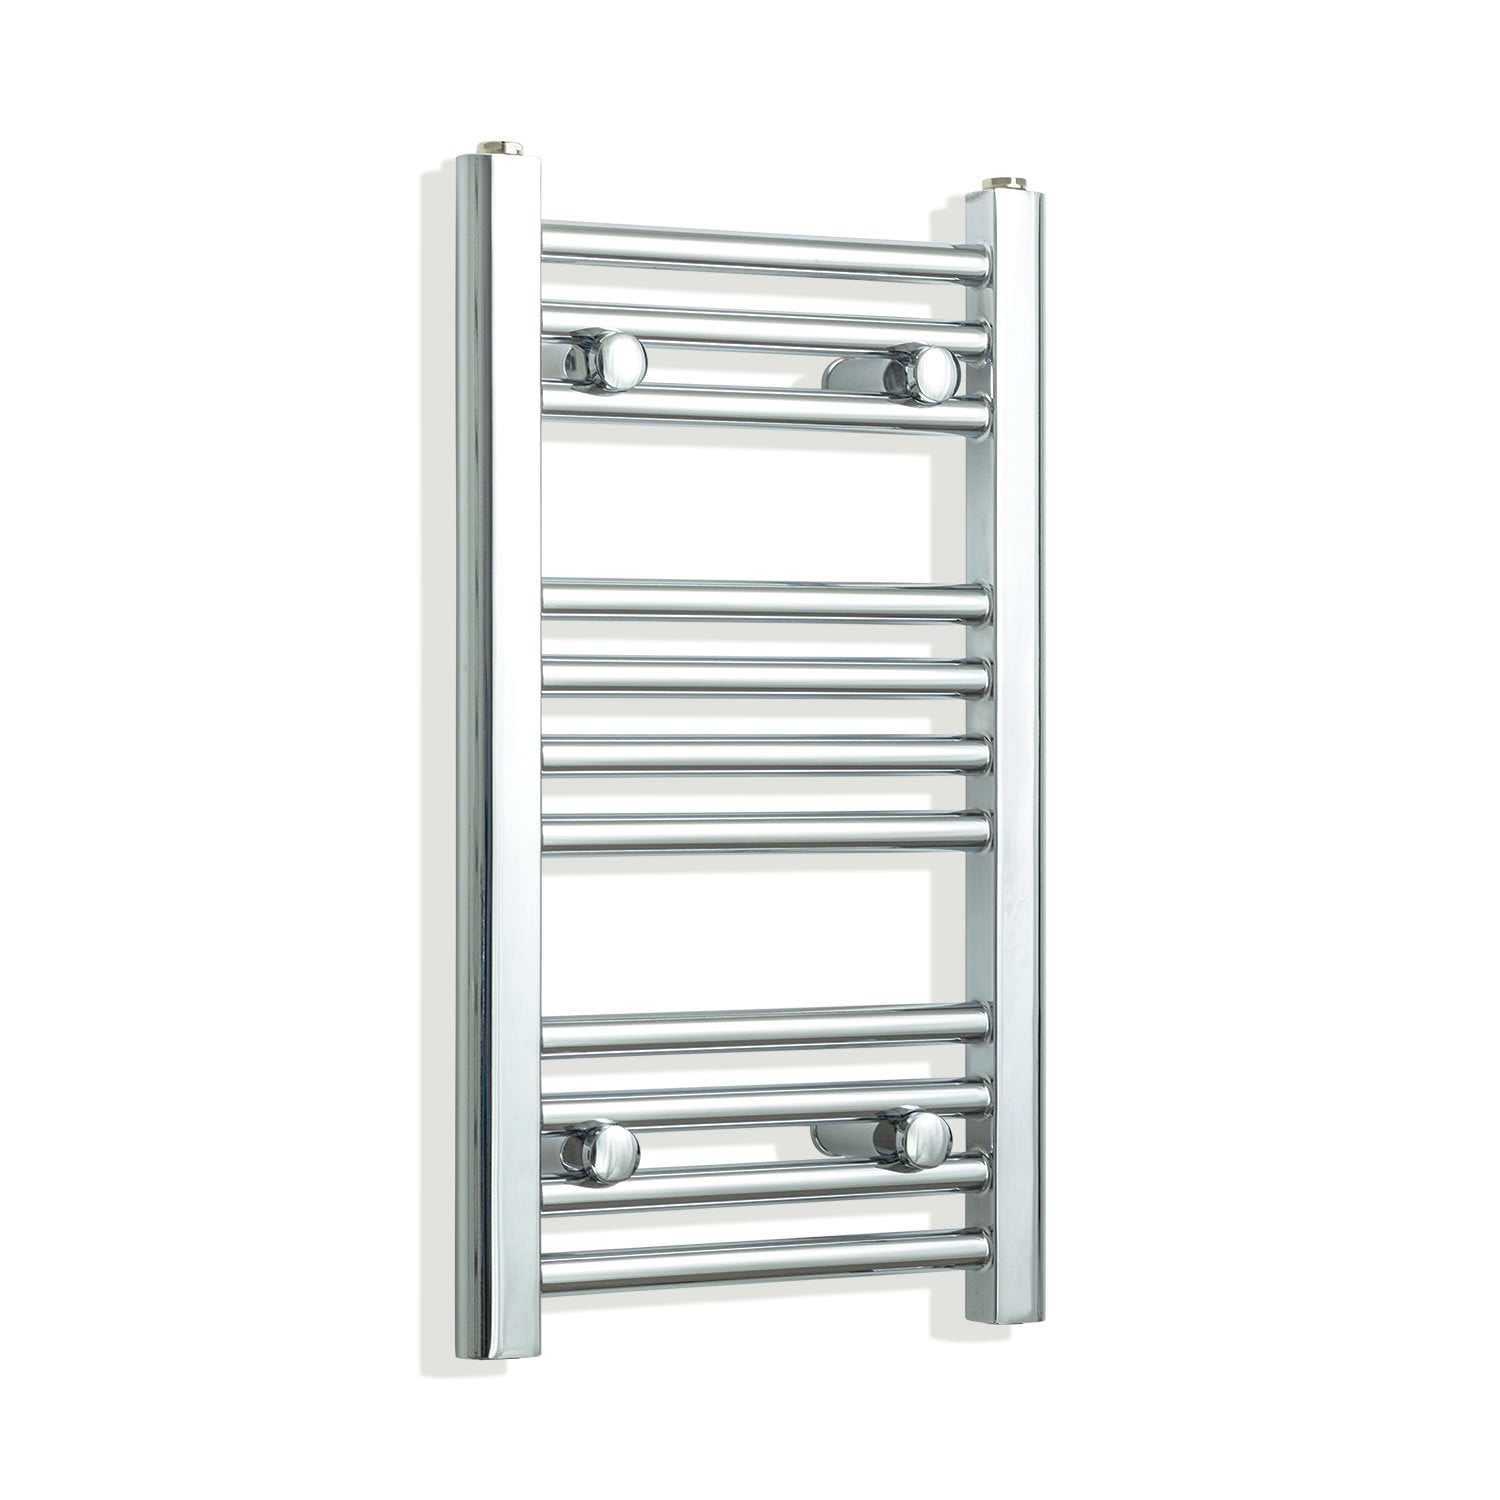 350mm Wide 600mm High Flat Chrome Heated Towel Rail Radiator,Towel Rail Only